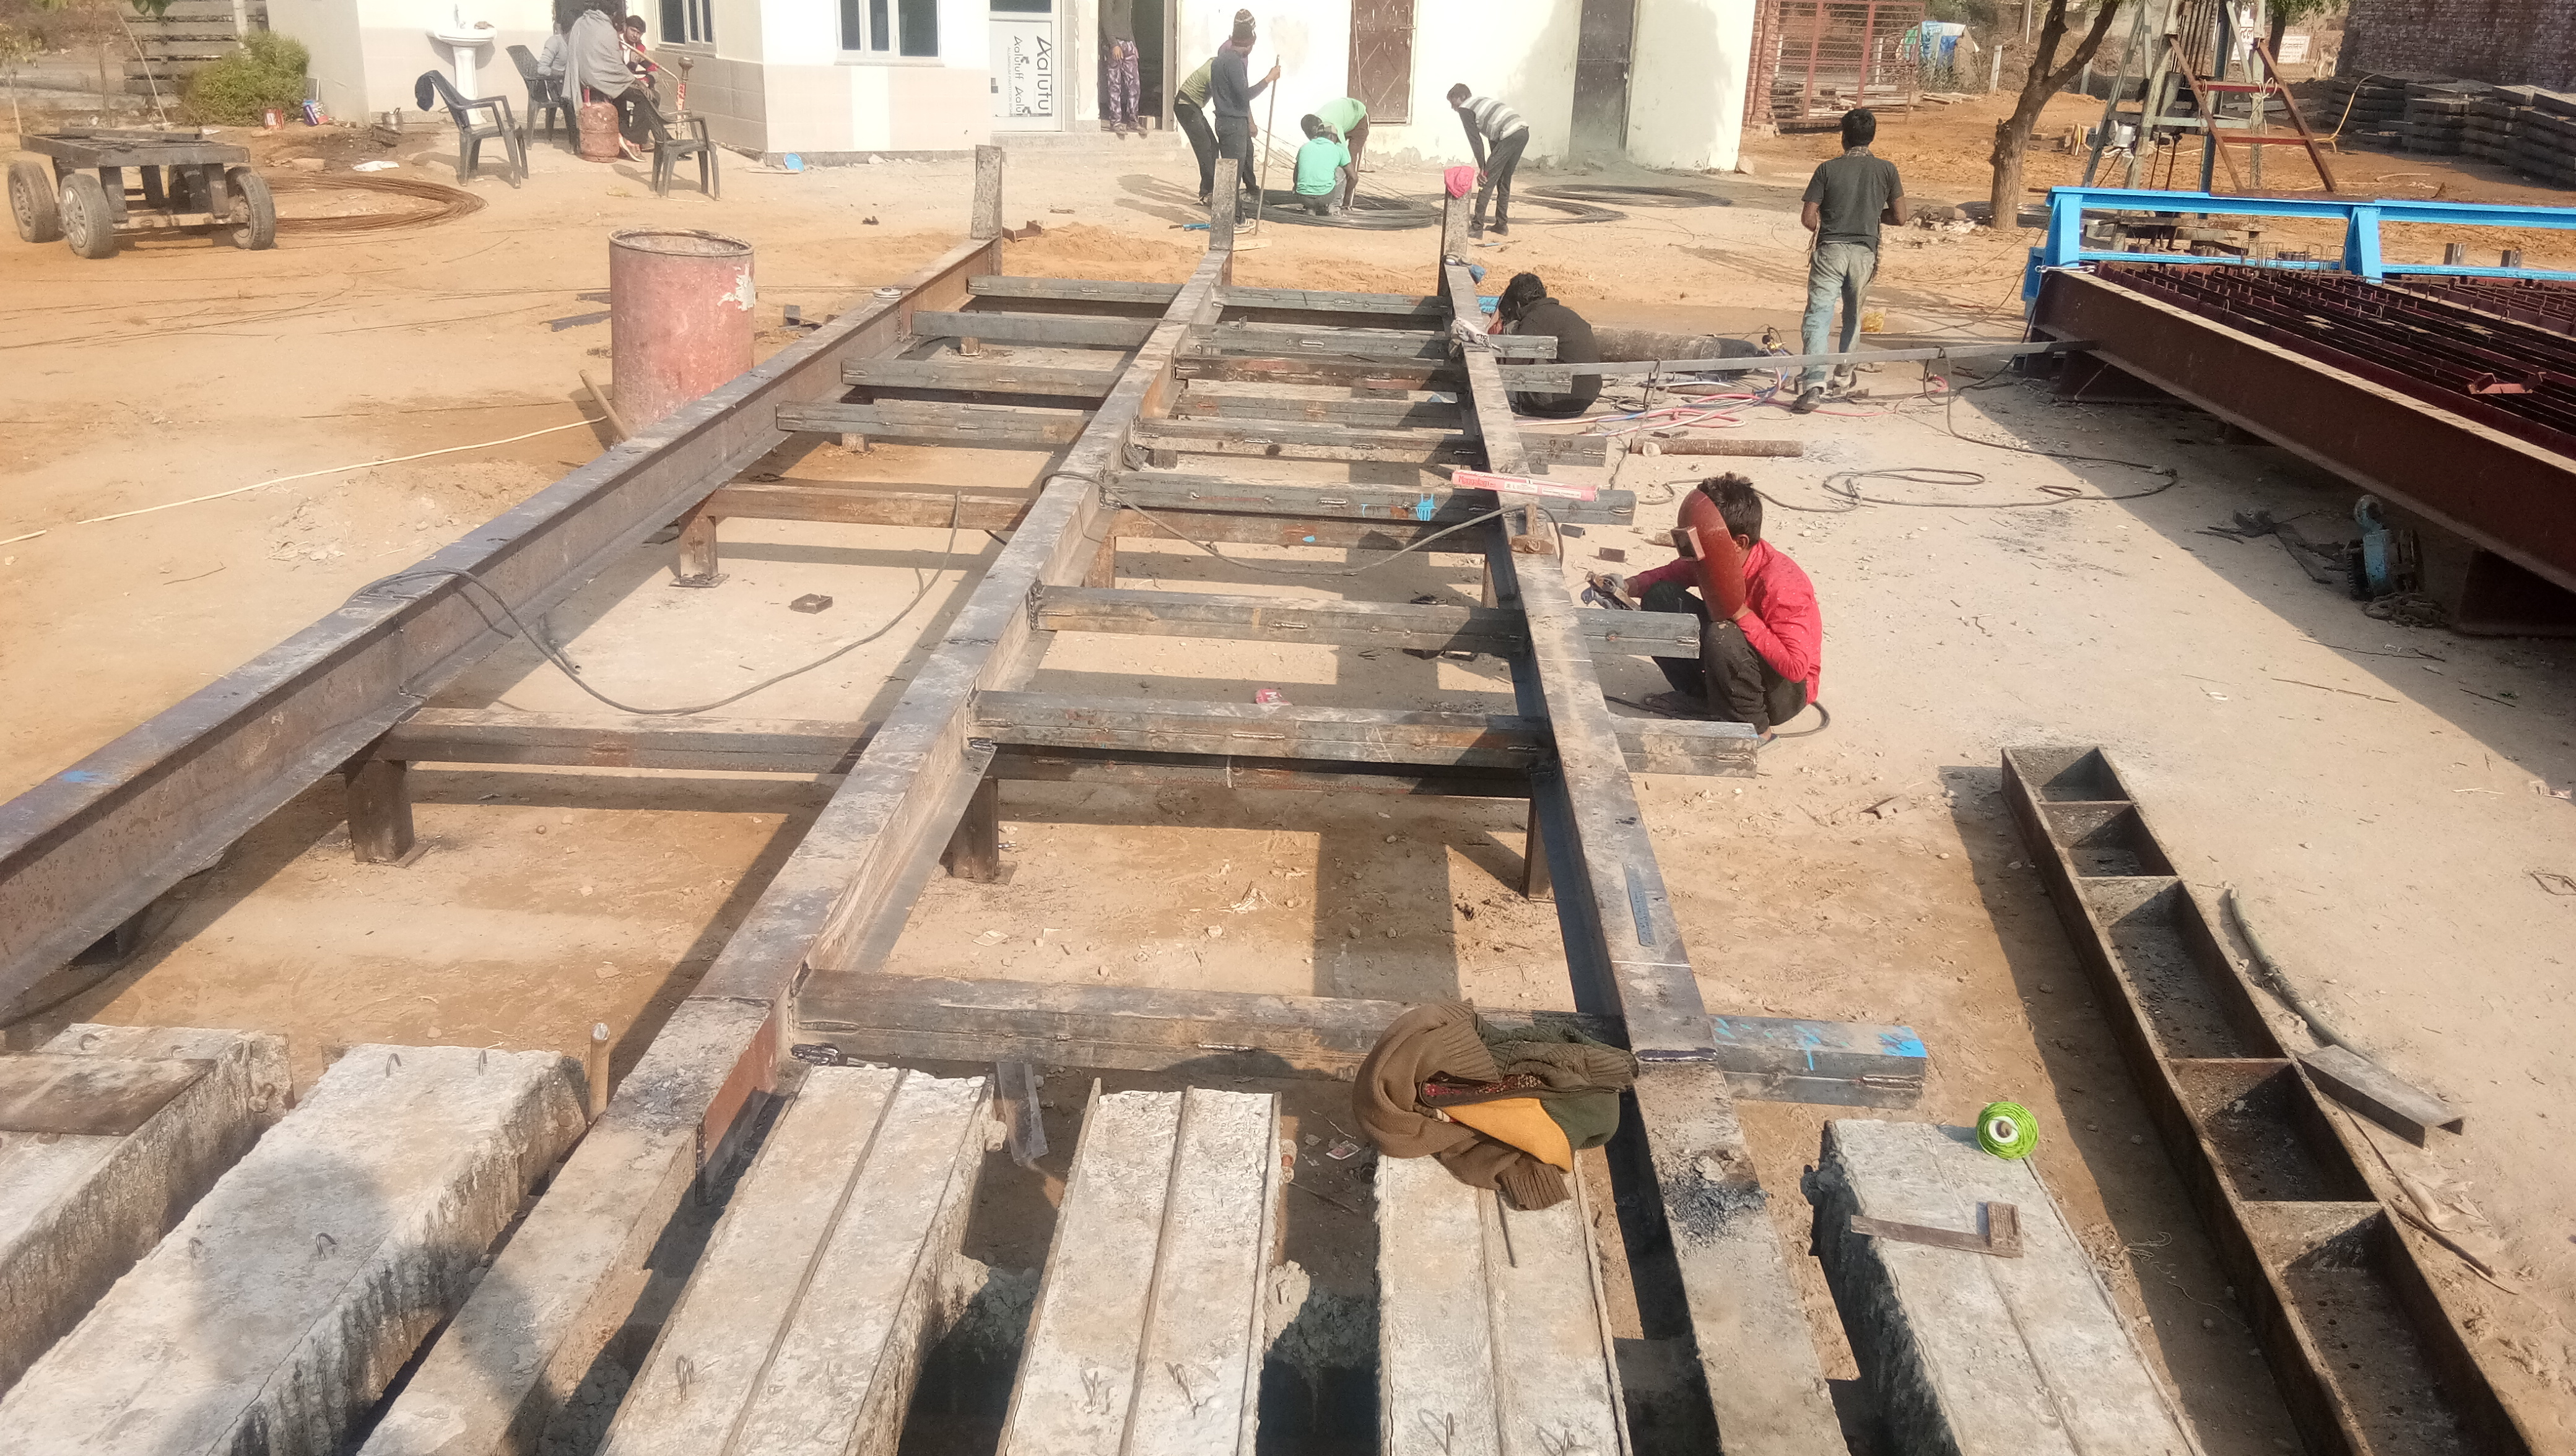 Fabrication work for electric pole factory